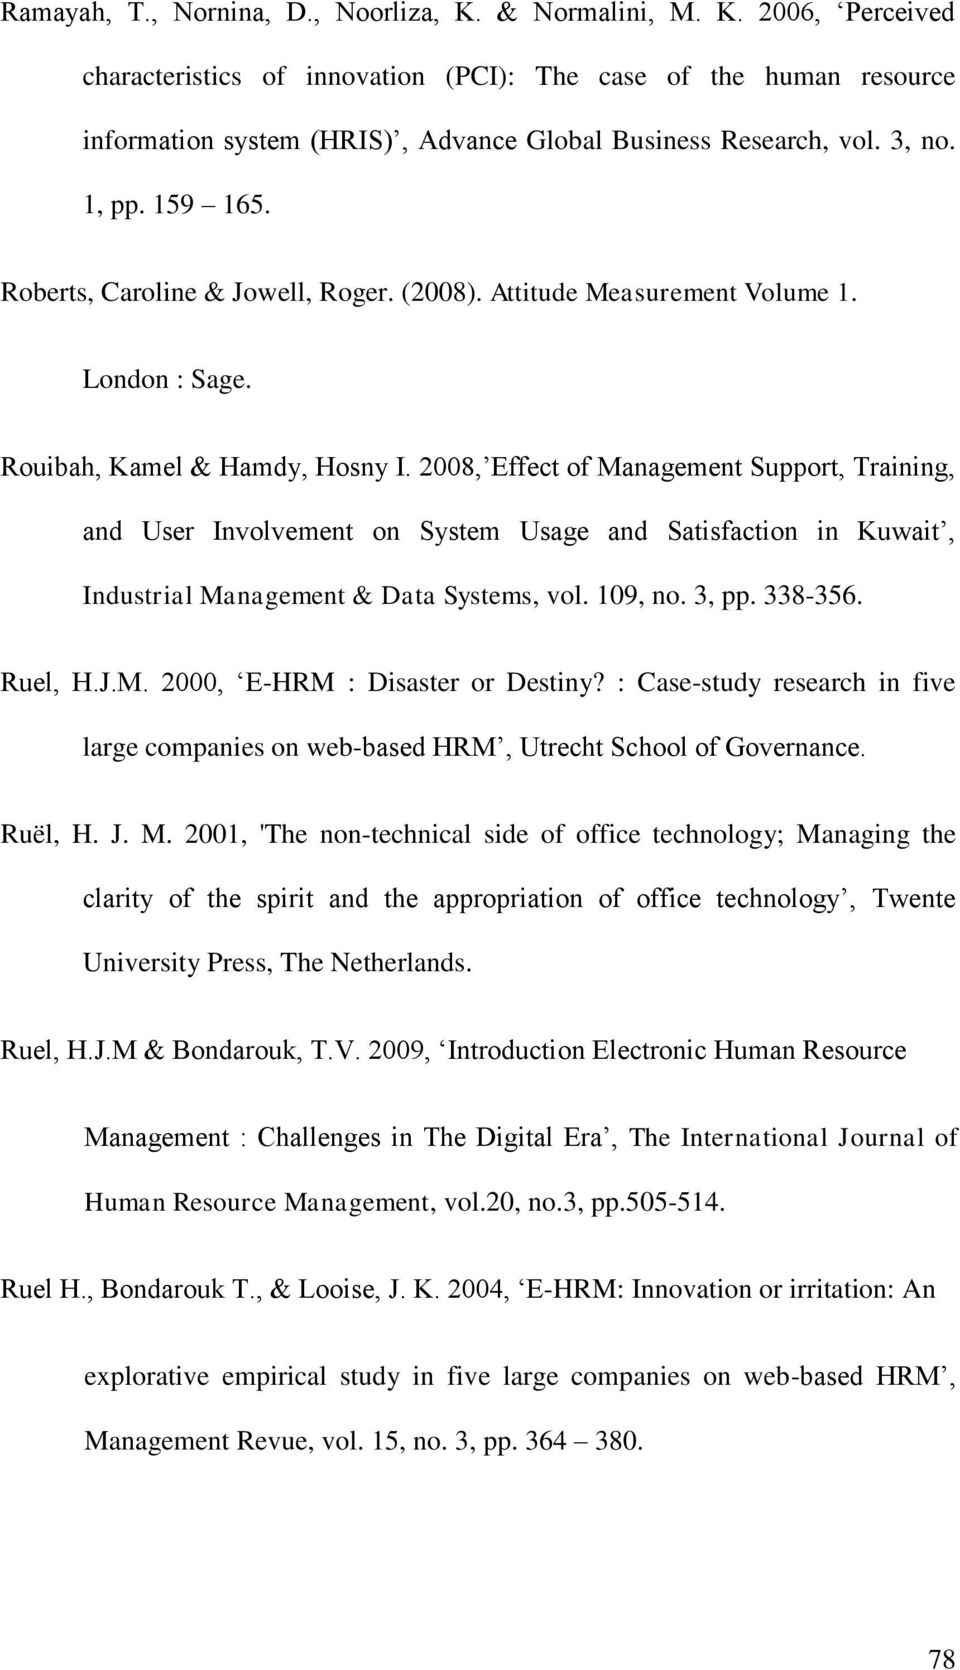 2008, Effect of Management Support, Training, and User Involvement on System Usage and Satisfaction in Kuwait, Industrial Management & Data Systems, vol. 109, no. 3, pp. 338-356. Ruel, H.J.M. 2000, E-HRM : Disaster or Destiny?